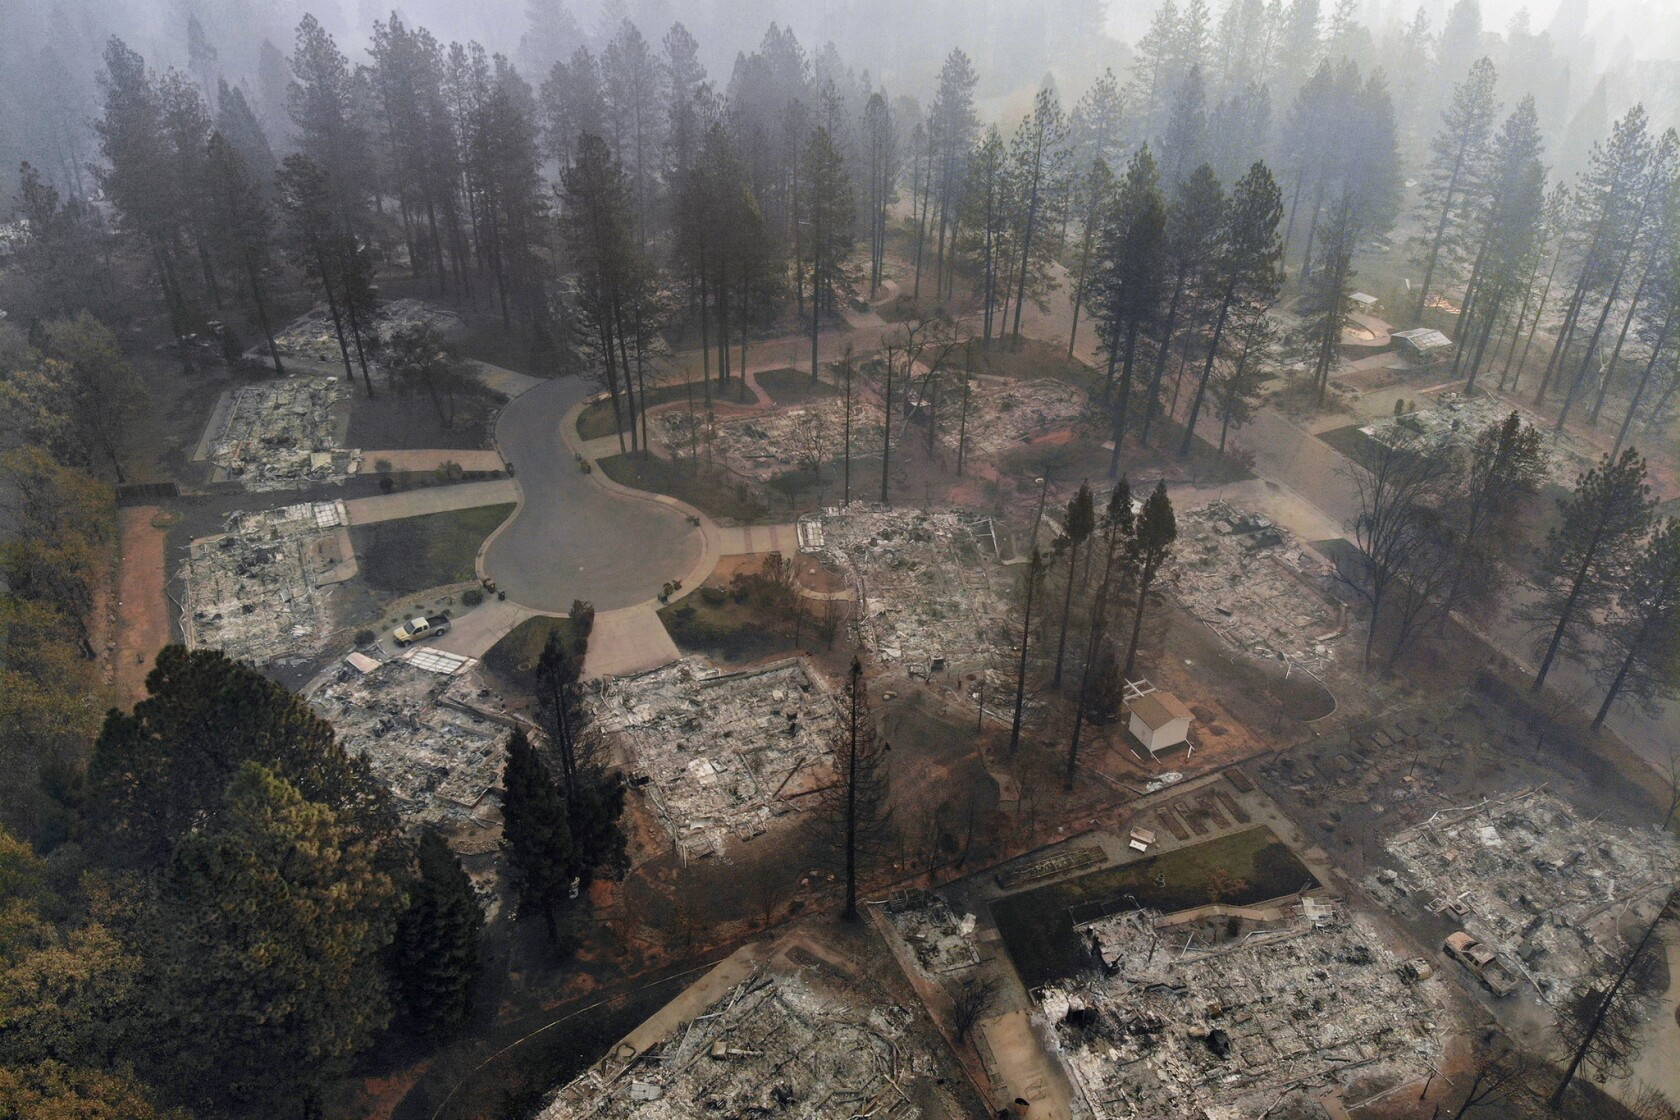 Death toll from the Paradise fire jumps to 42, making it the